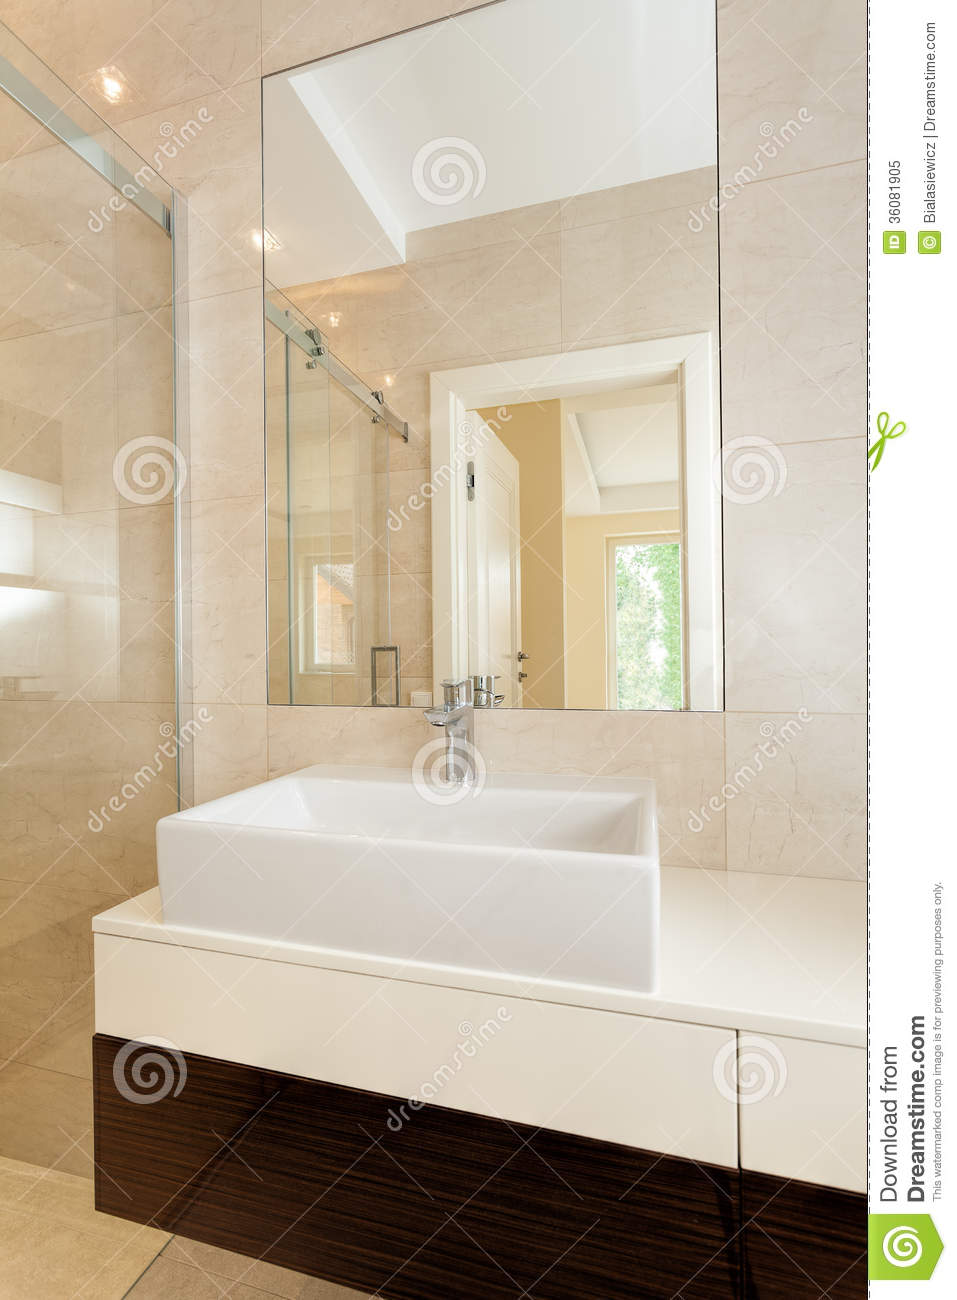 Sink bowl bathroom - Rectangular Vessel Sink In Modern Bathroom Royalty Free